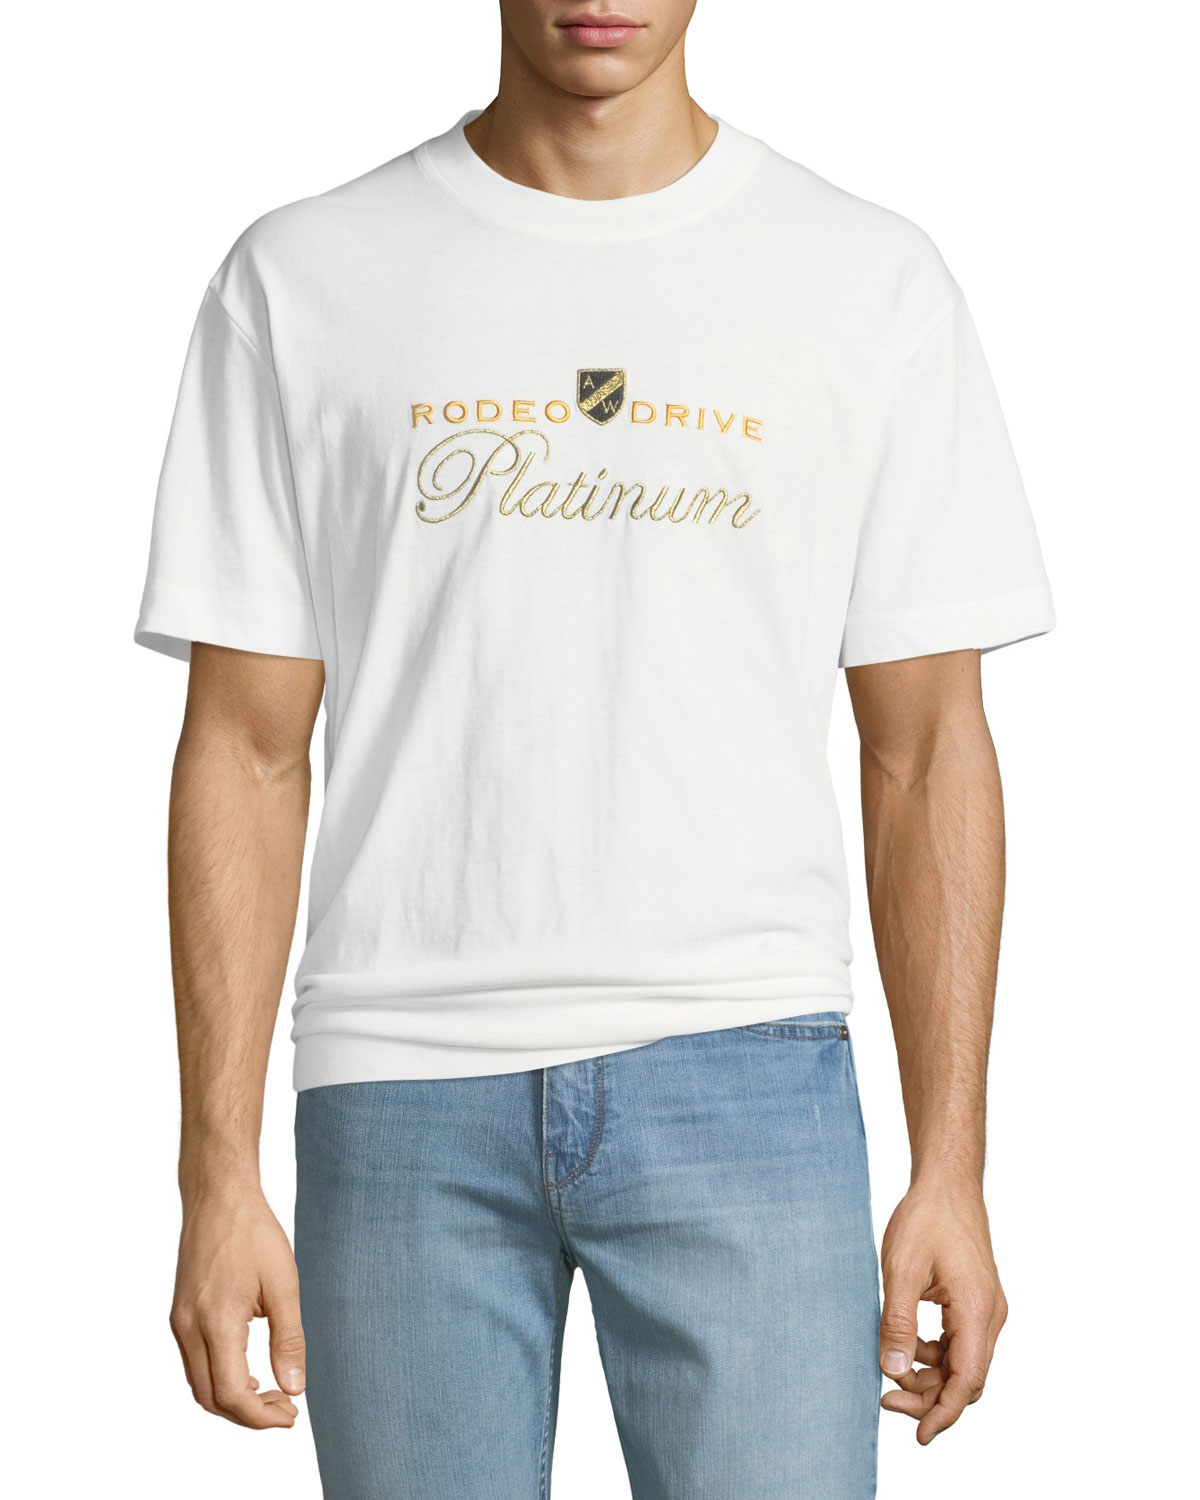 Alexander Wang Men S Rodeo Drive Platinum Embroidered T